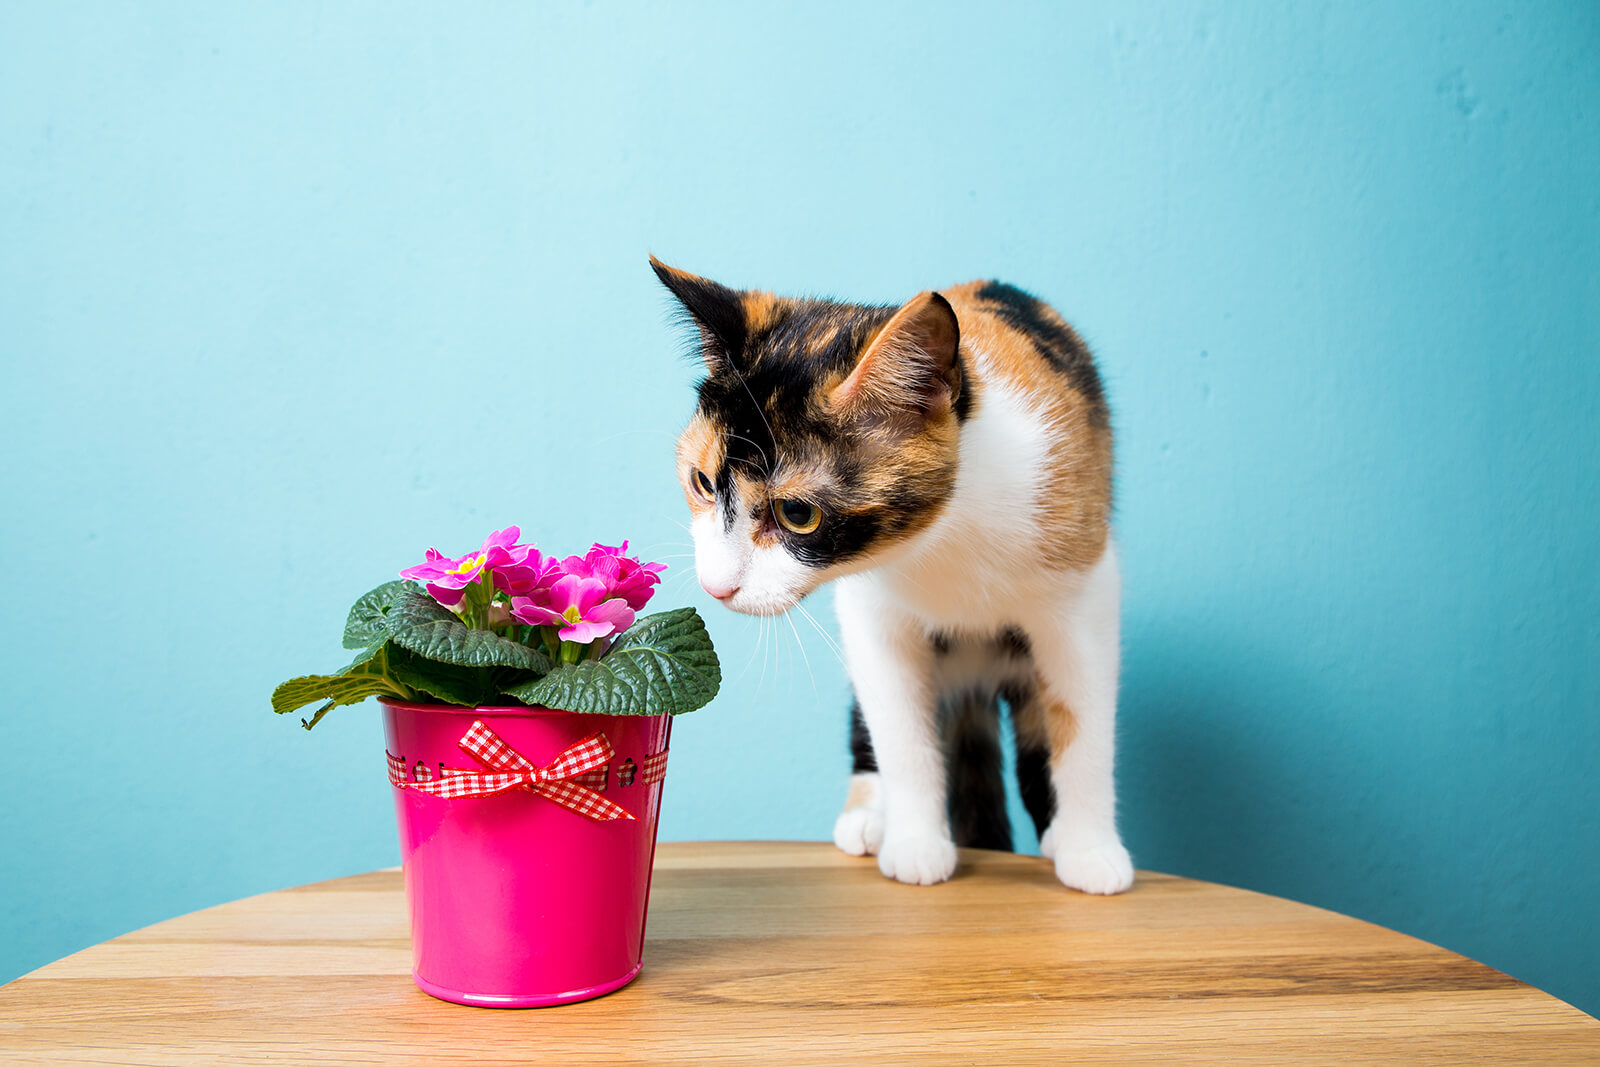 Cat on table smelling flowers